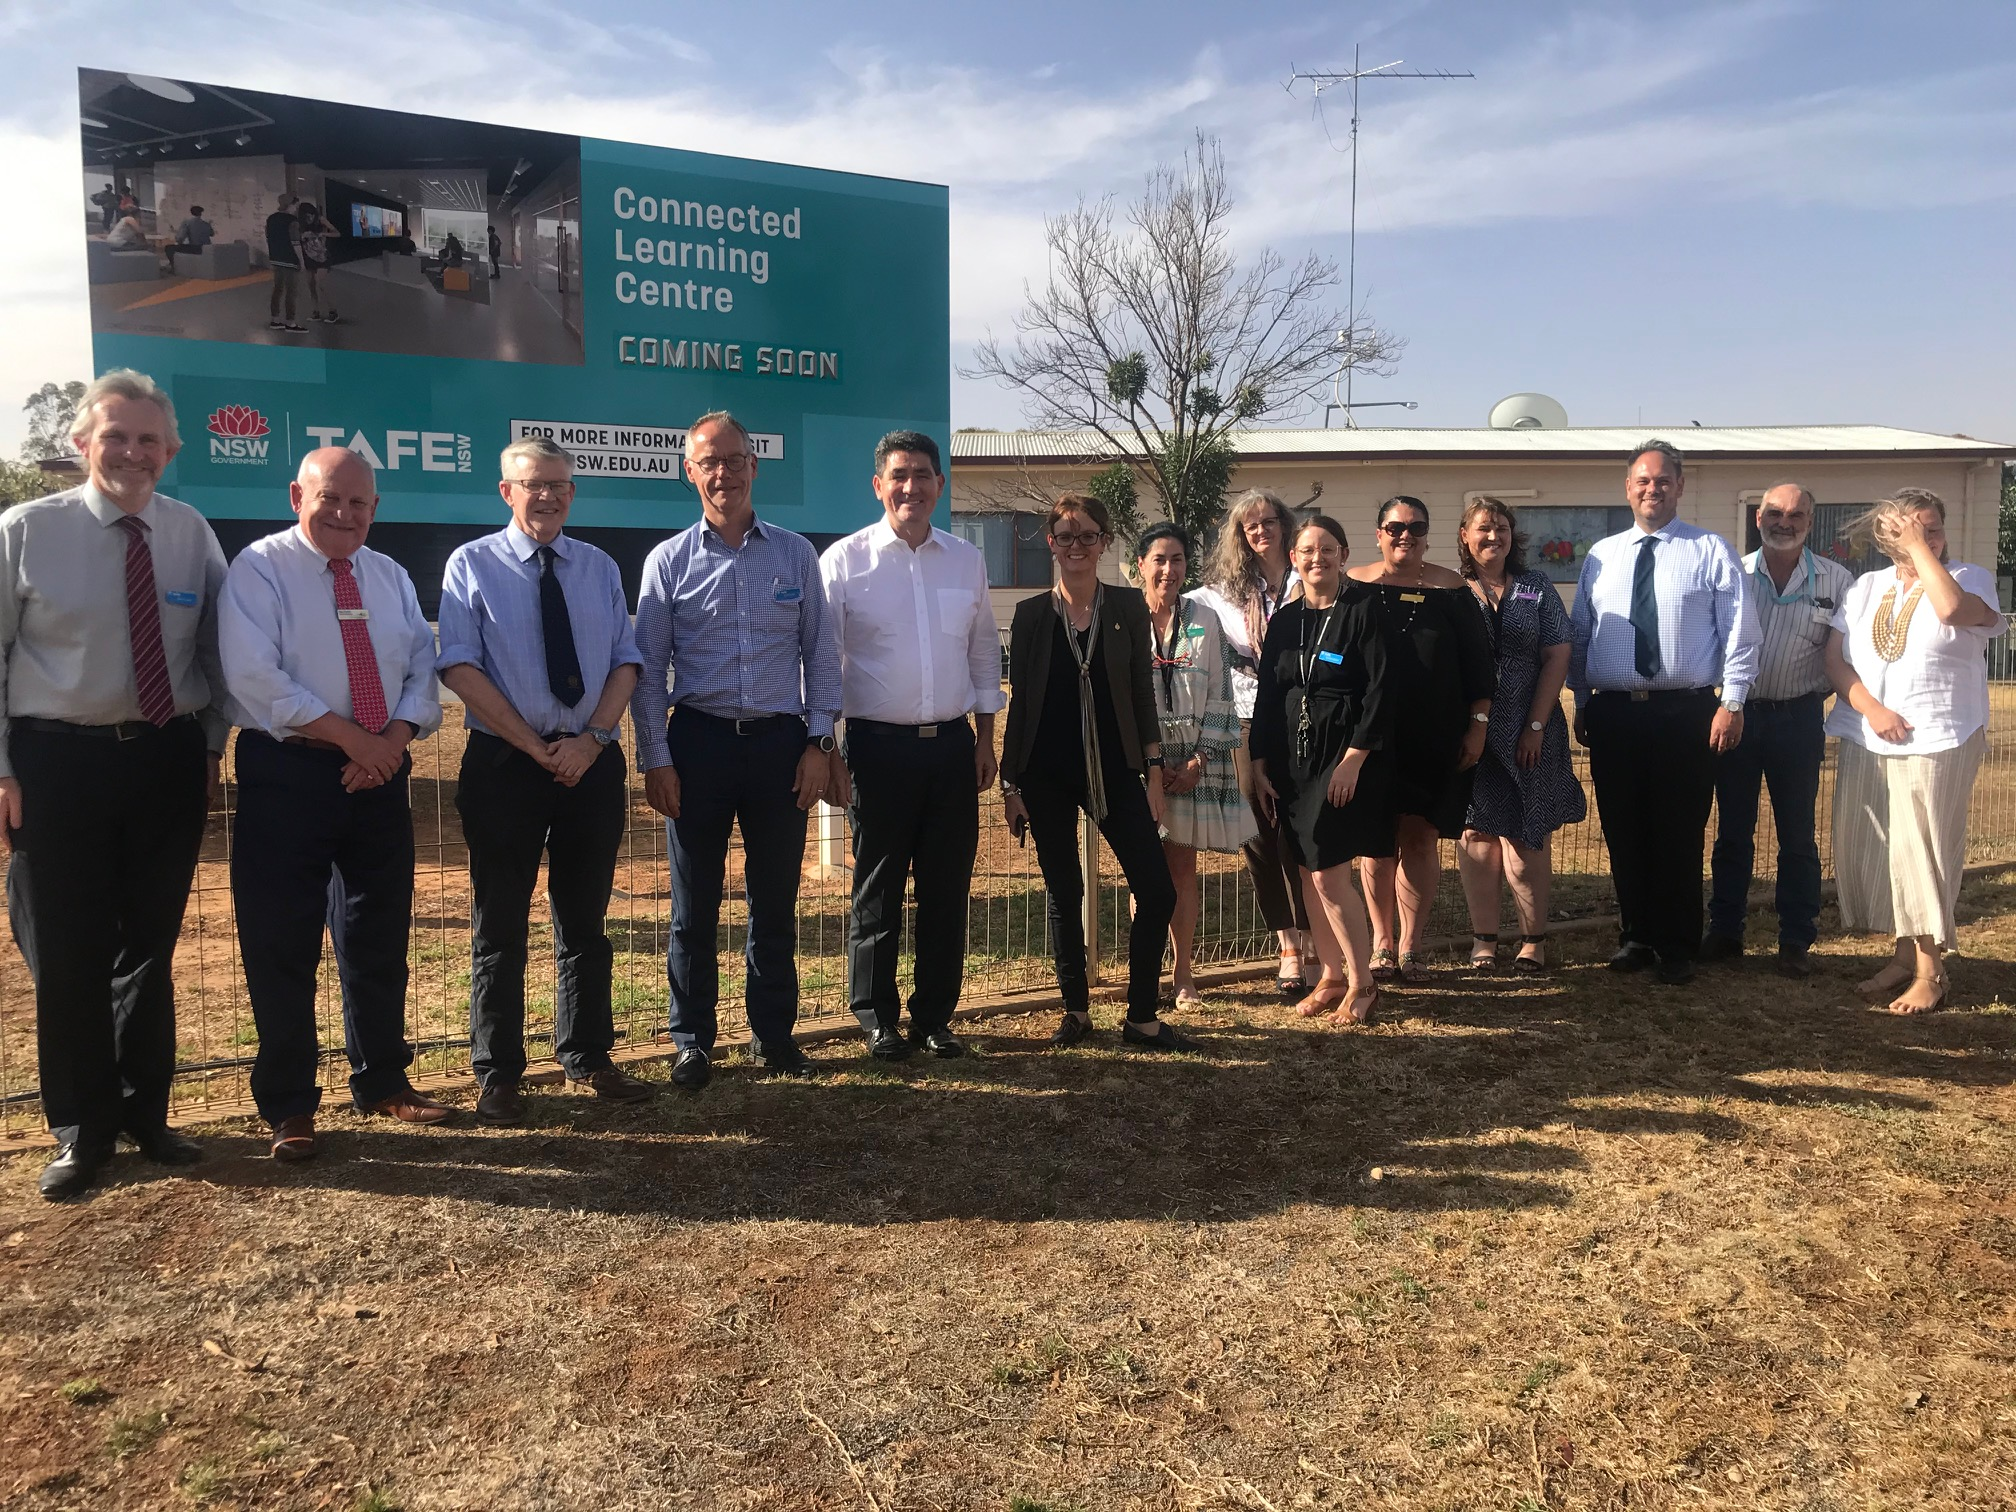 A group of people including Minister Geoff Lee and Steph Cooke stand in front of the West Wyalong TAFE.